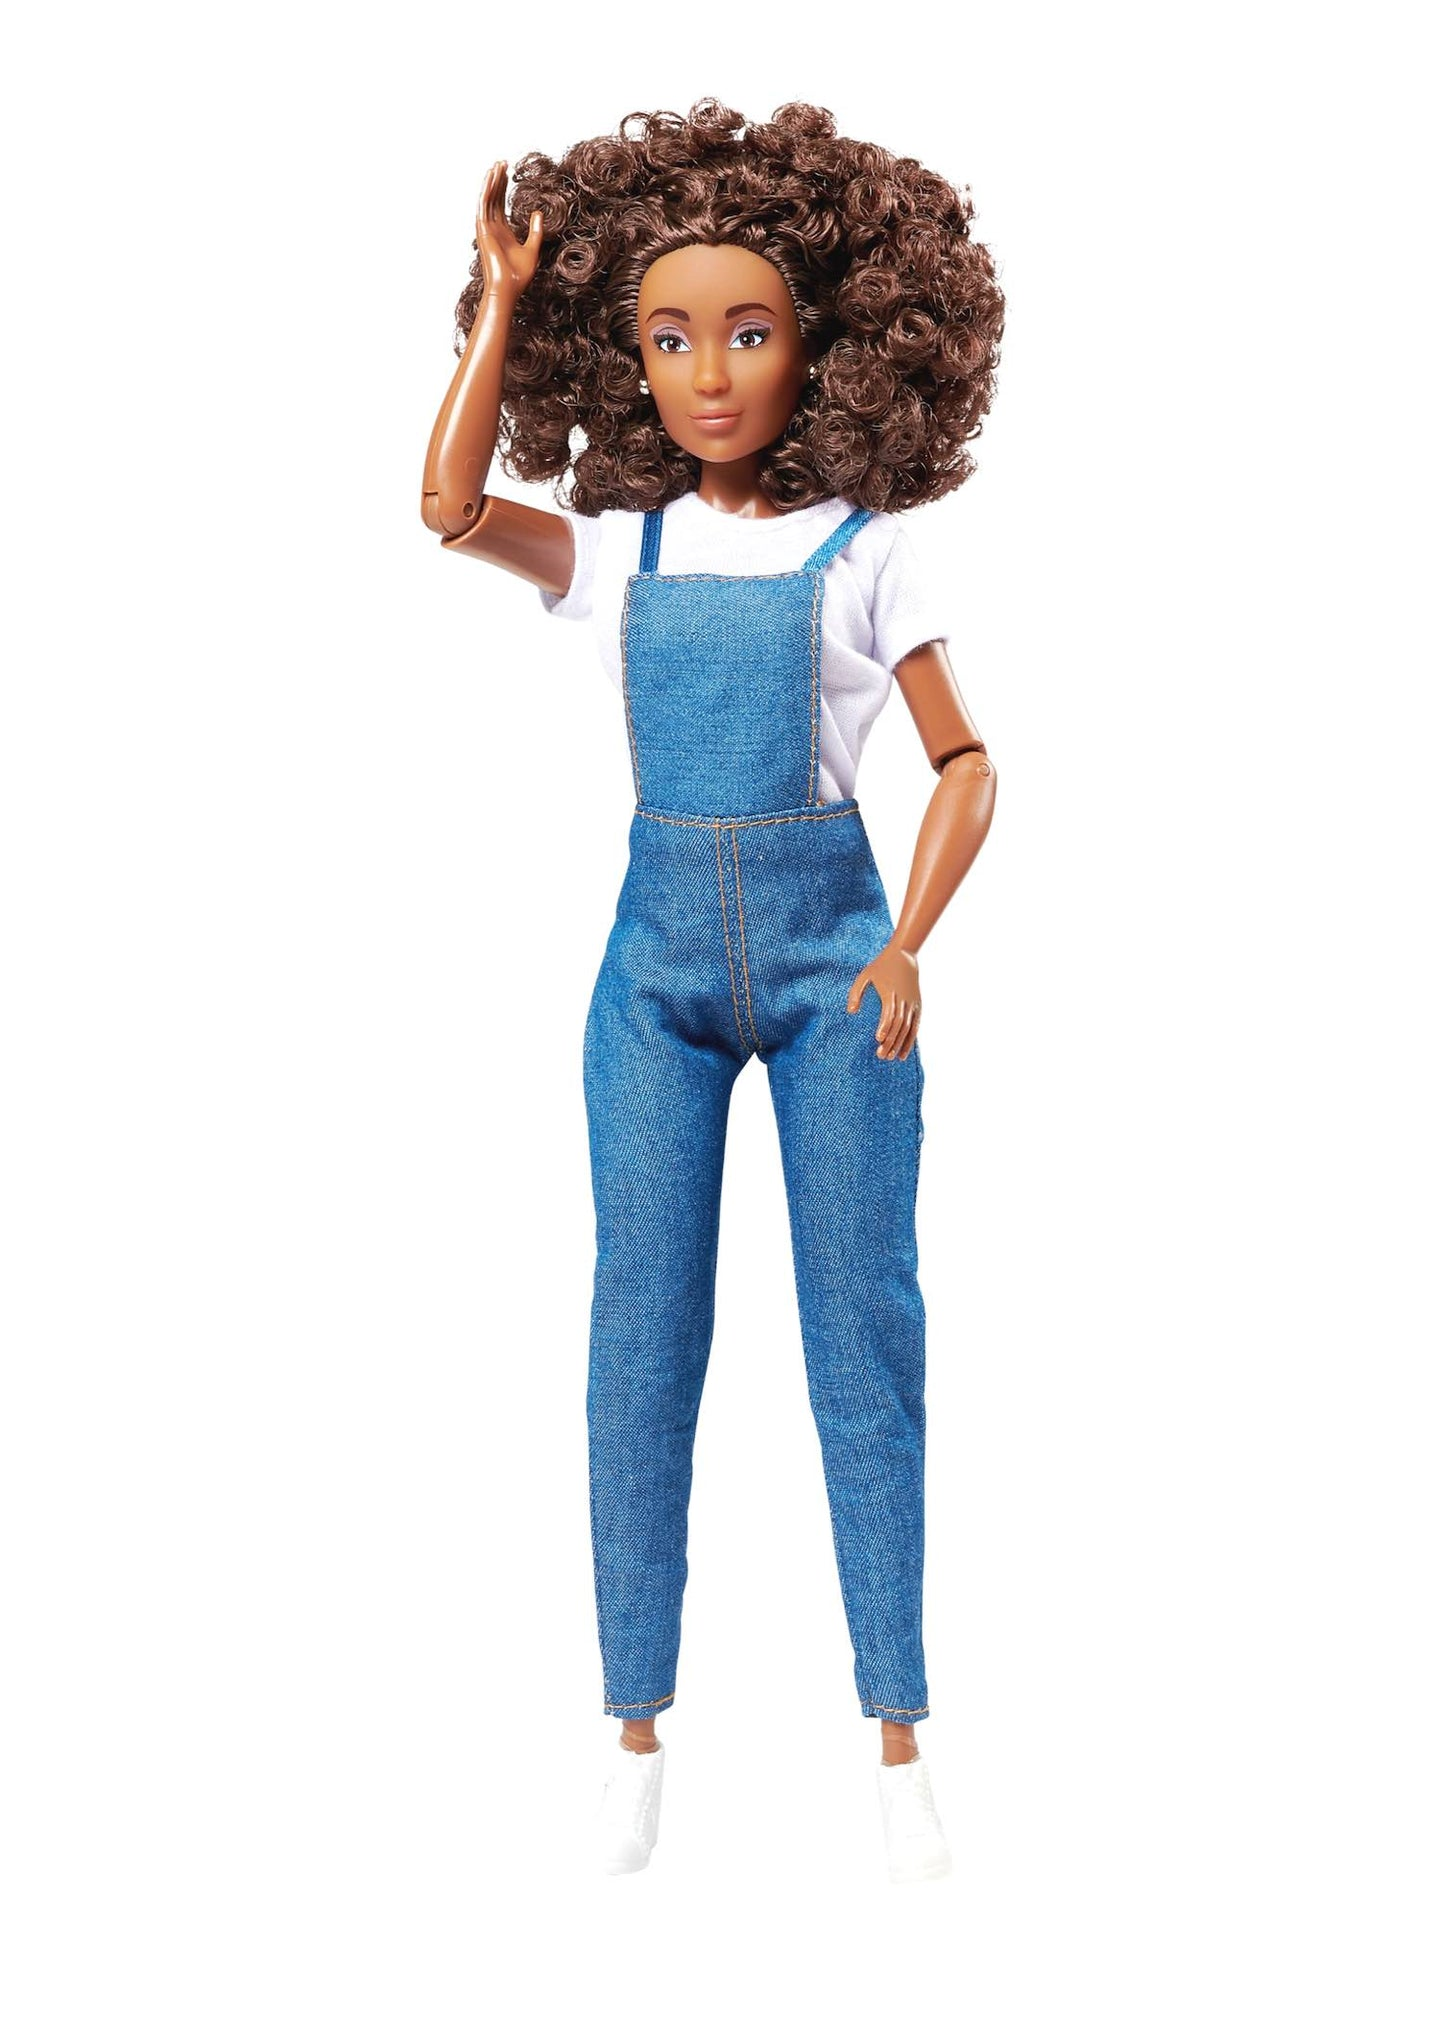 Natural Curly Hair Afro Puffs EBONY Fashion Doll The Fresh Dolls™